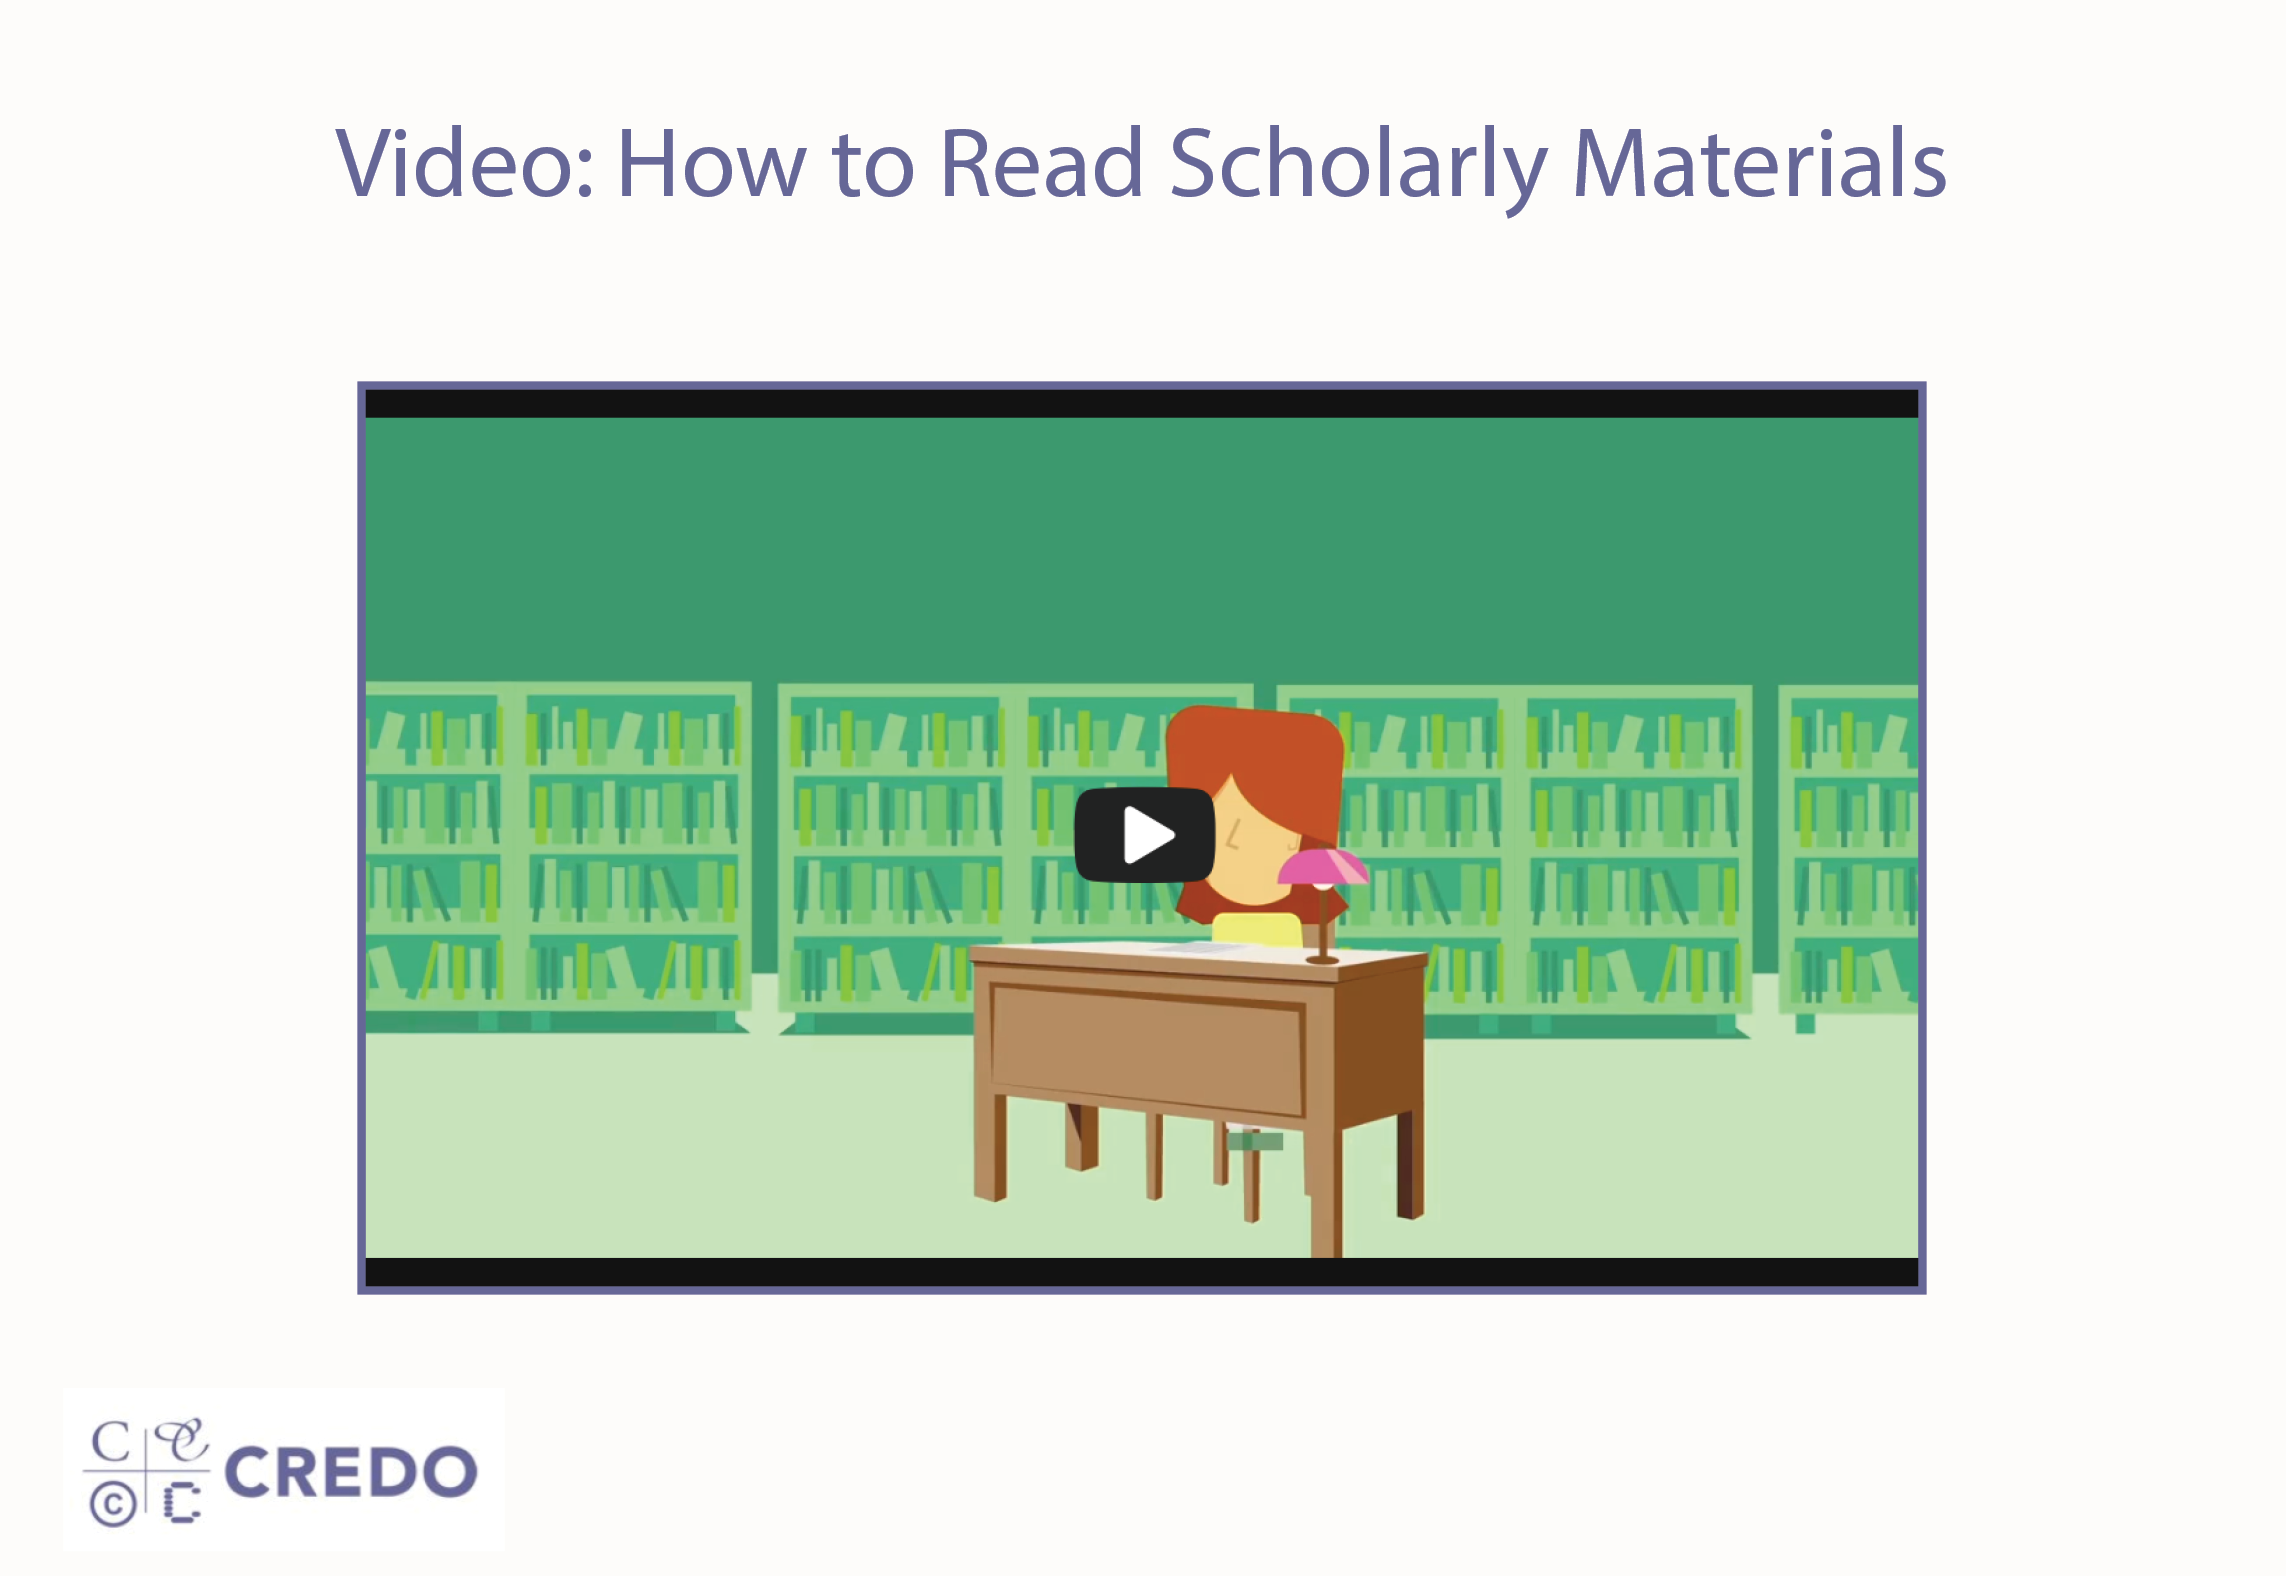 Video: How To Read Scholarly Materials